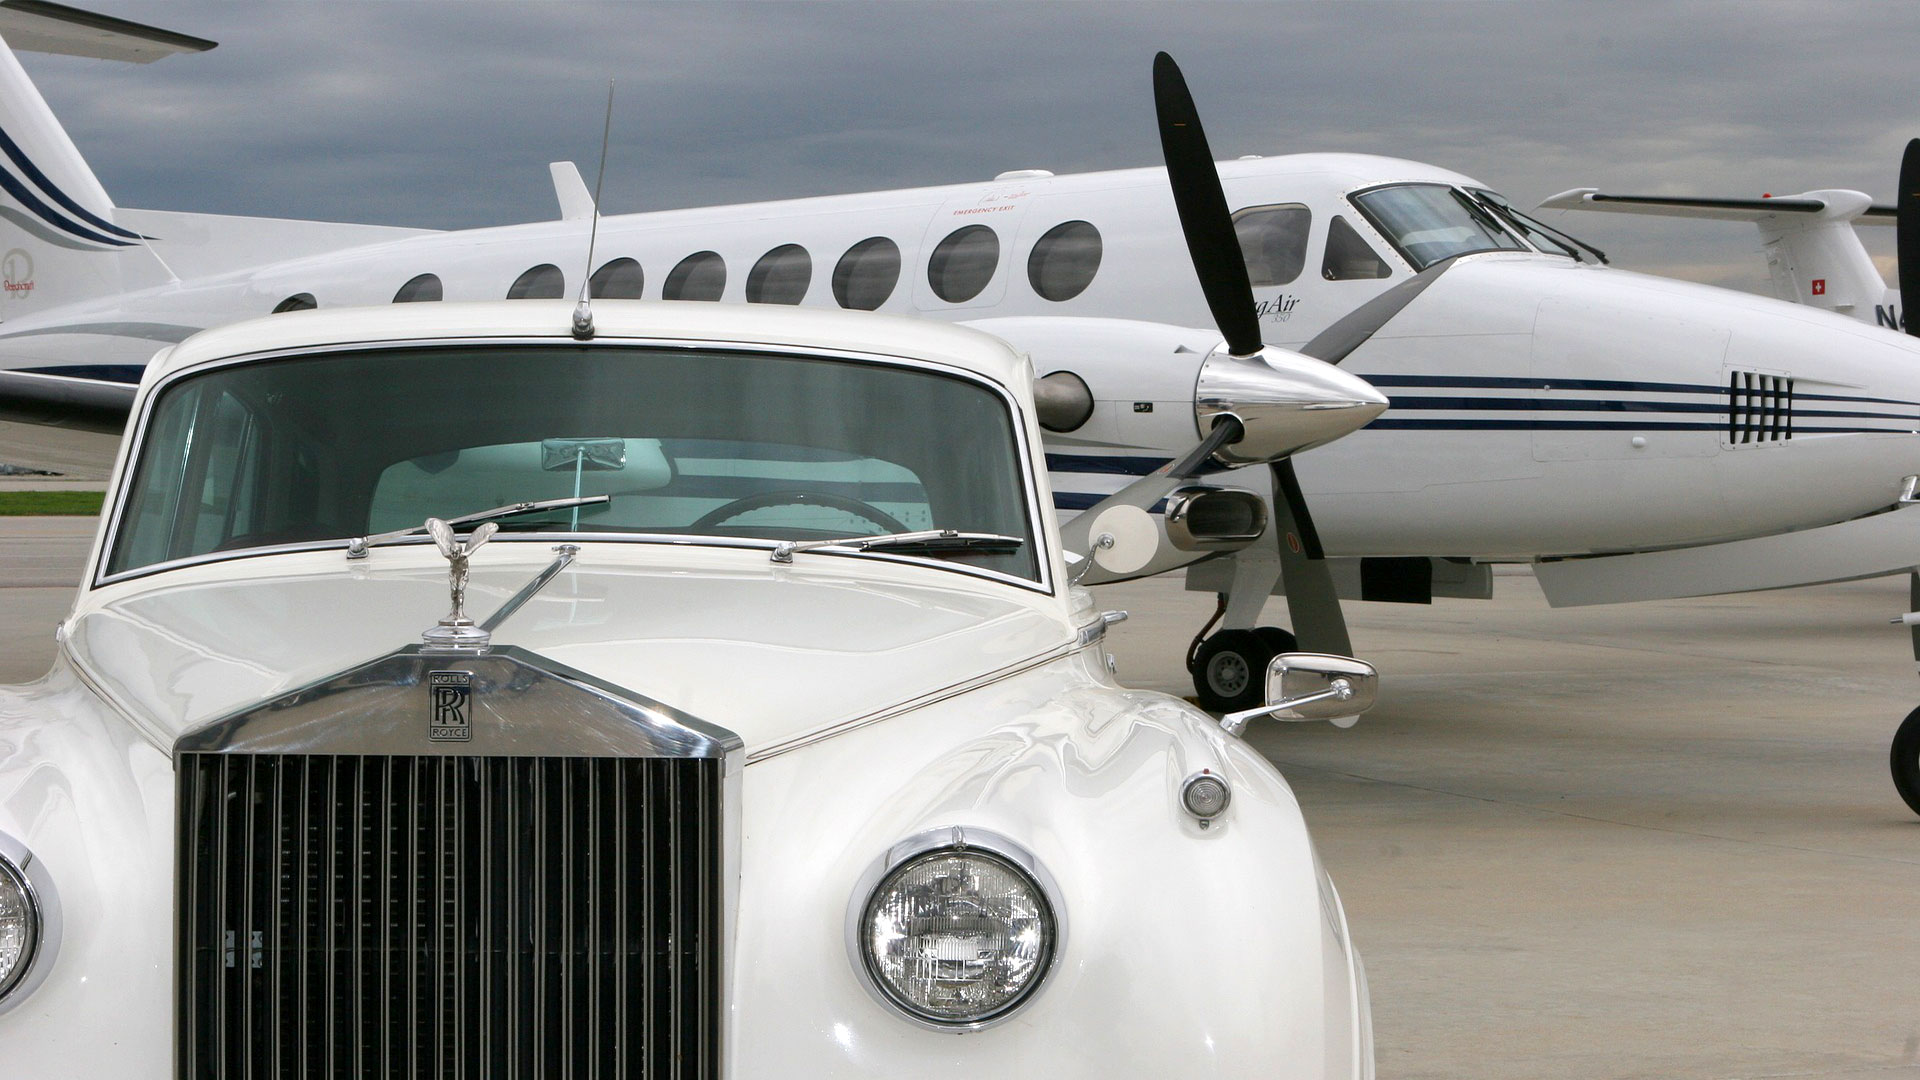 Airport Taxi Transfer with Rolls Royce - Varna Airport